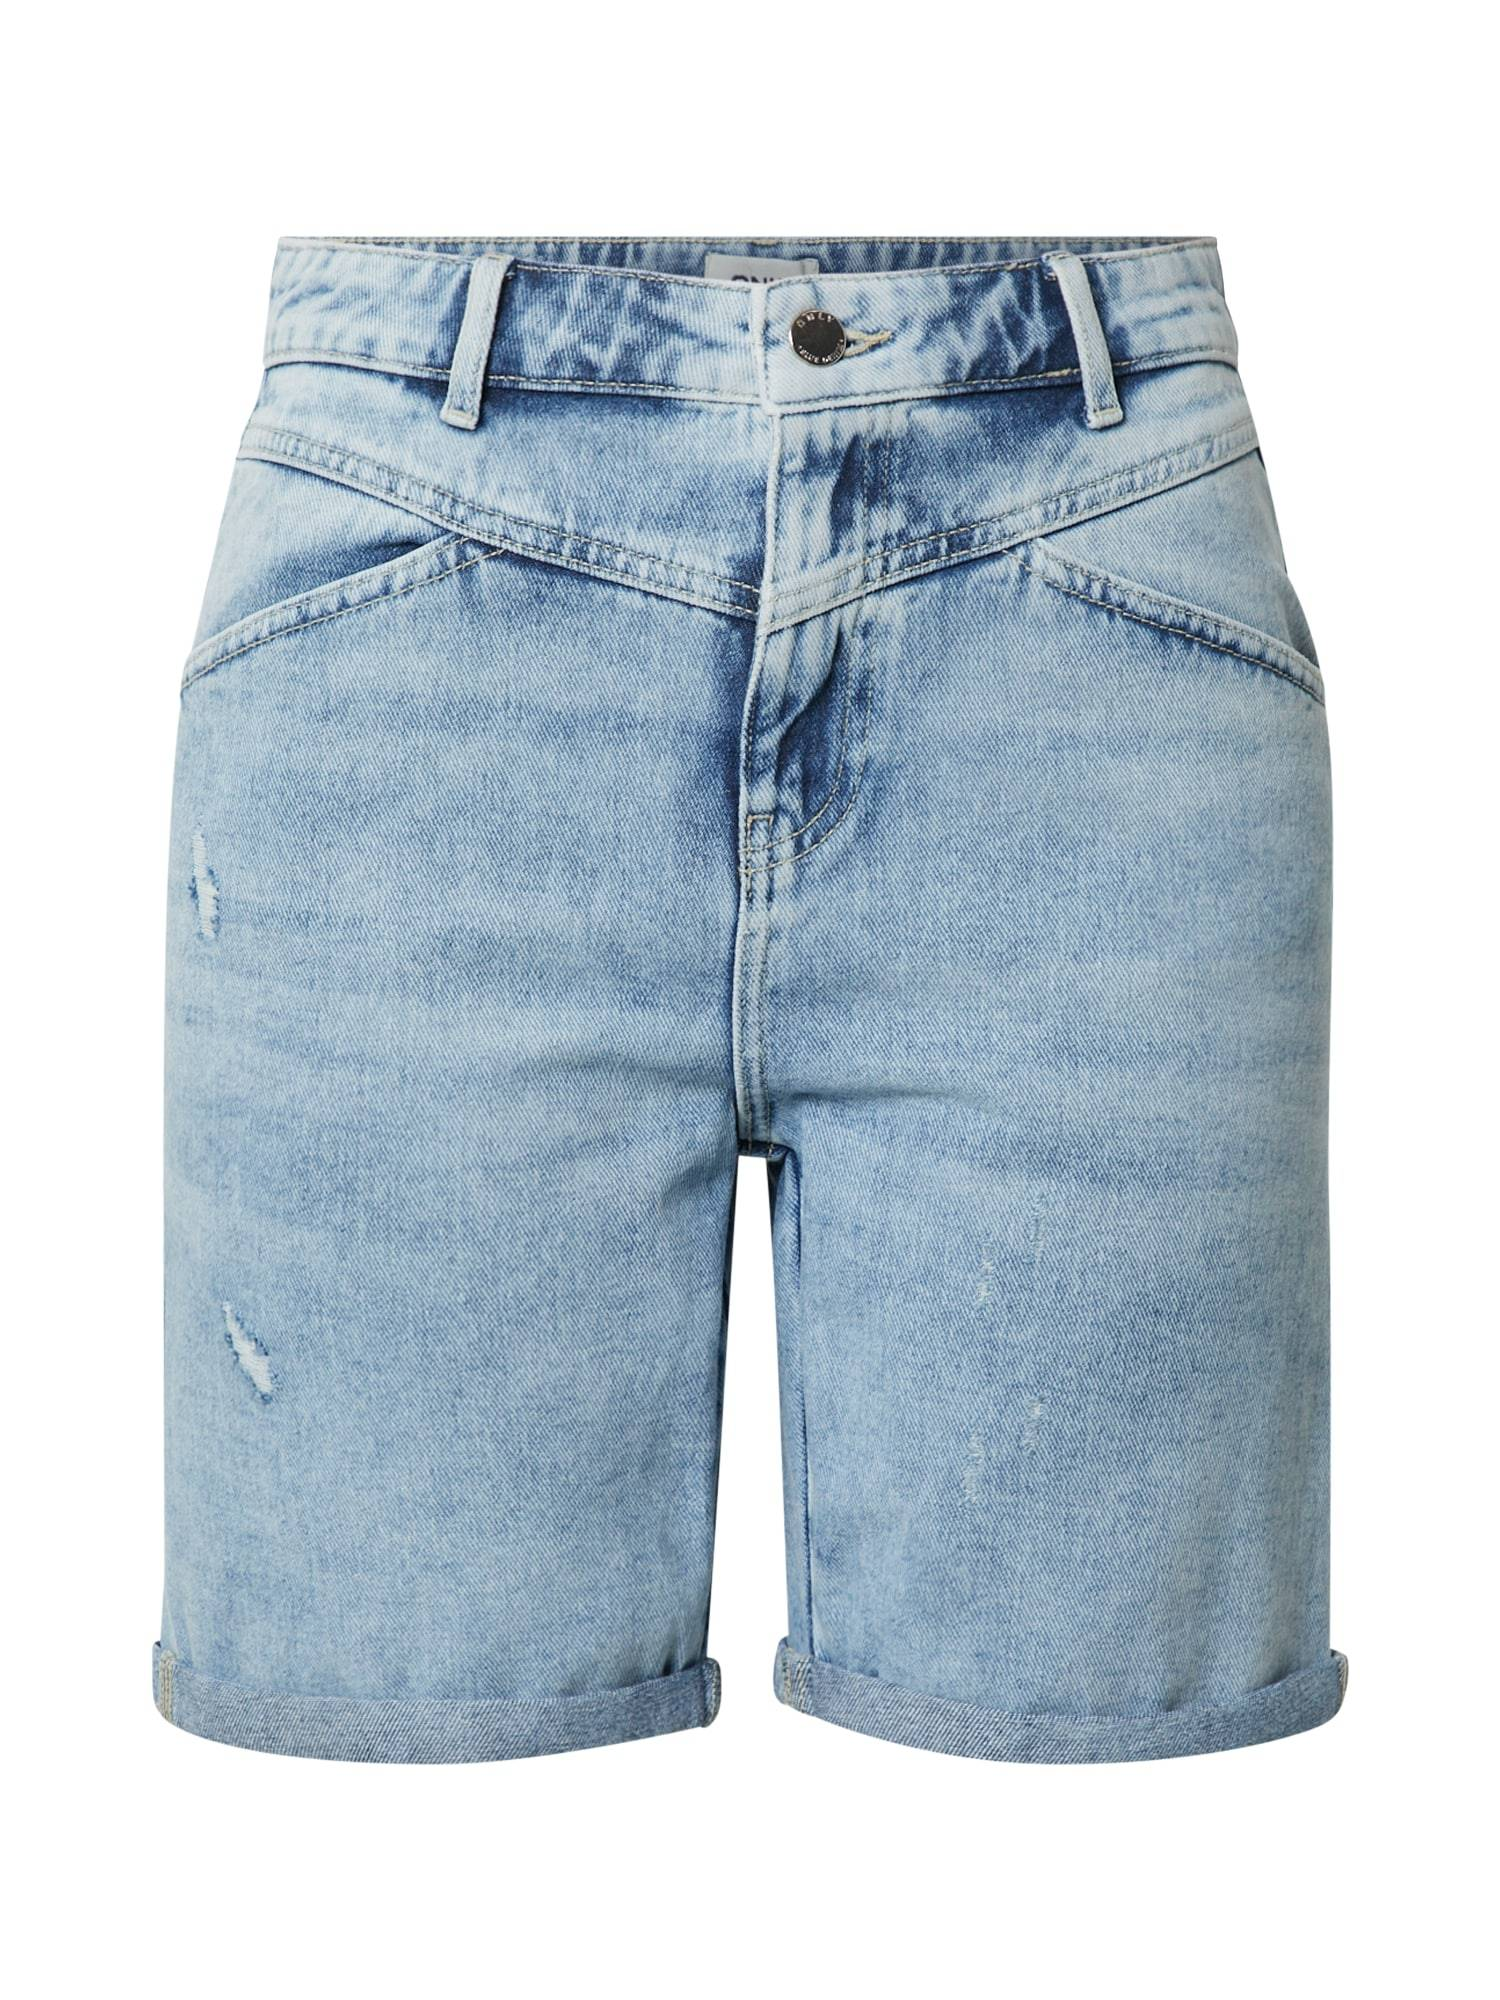 ONLY Jean 'Future'  - Bleu - Taille: L - female